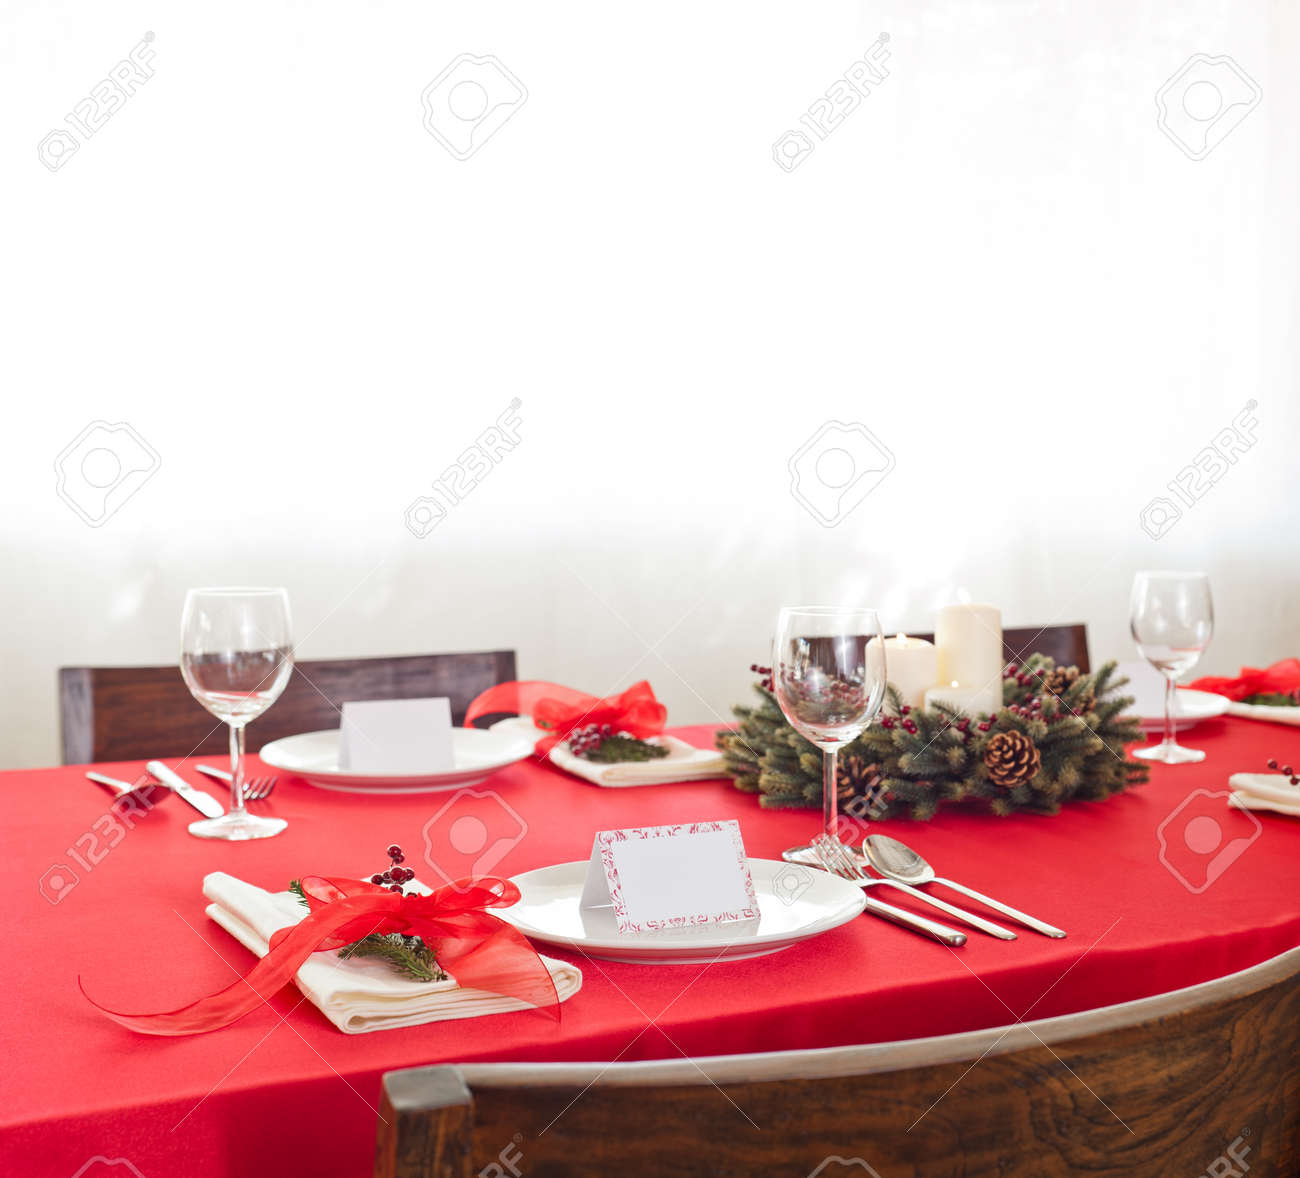 Red Christmas dinner table setup with name place card Stock Photo - 26351982  sc 1 st  123RF.com & Red Christmas Dinner Table Setup With Name Place Card Stock Photo ...